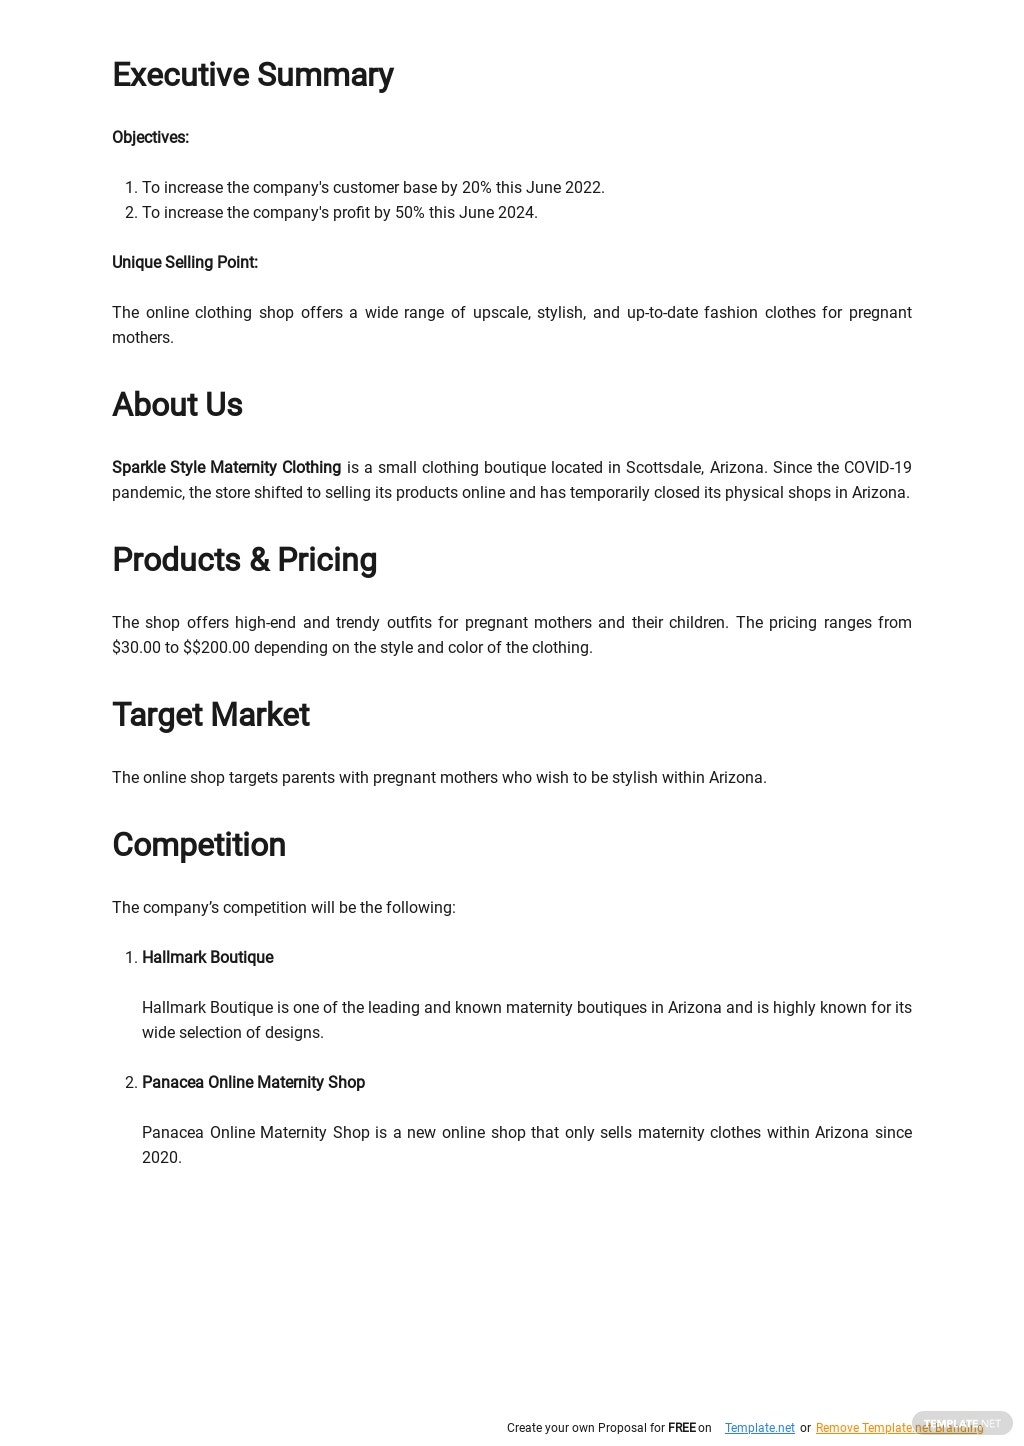 Online Clothing Business Plan Template 1.jpe